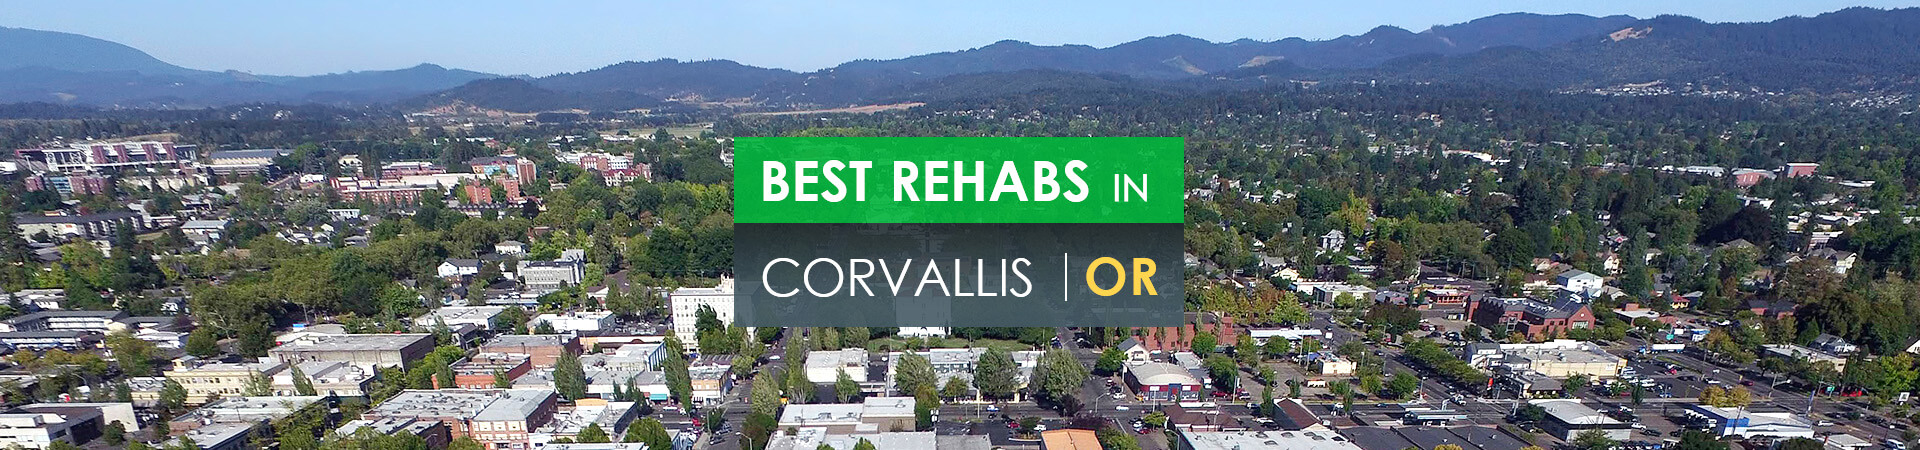 Best rehabs in Corvallis, OR